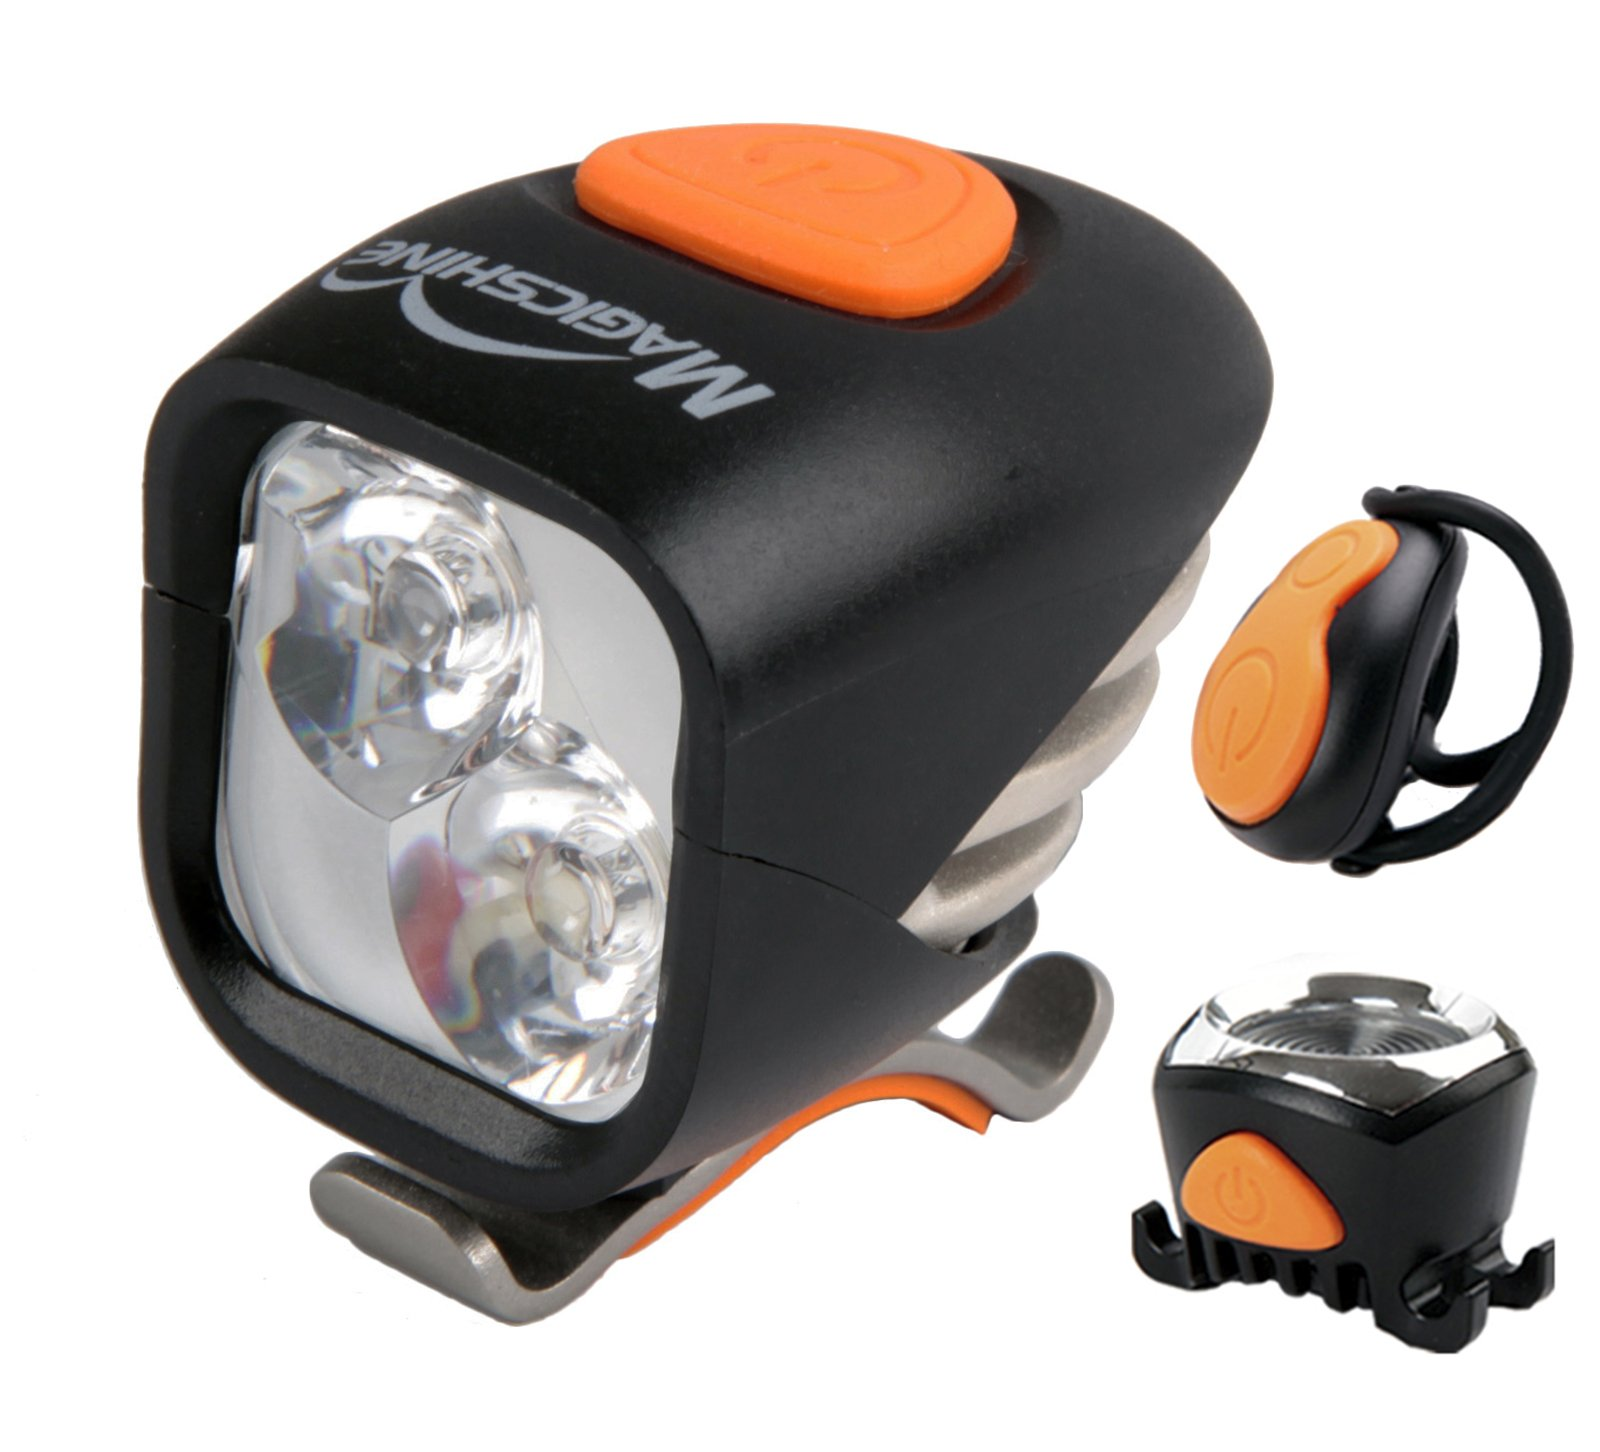 Magicshine MJ 902, 1600 Lumens Bike Light Set, Wireless Remote Bicycle Lights Front And Rear Combo, Rechargeable 2 CREE XM-L2 LED Bike Tail Light, Portable & Convenient Bright Bike Light by Magicshine (Image #1)